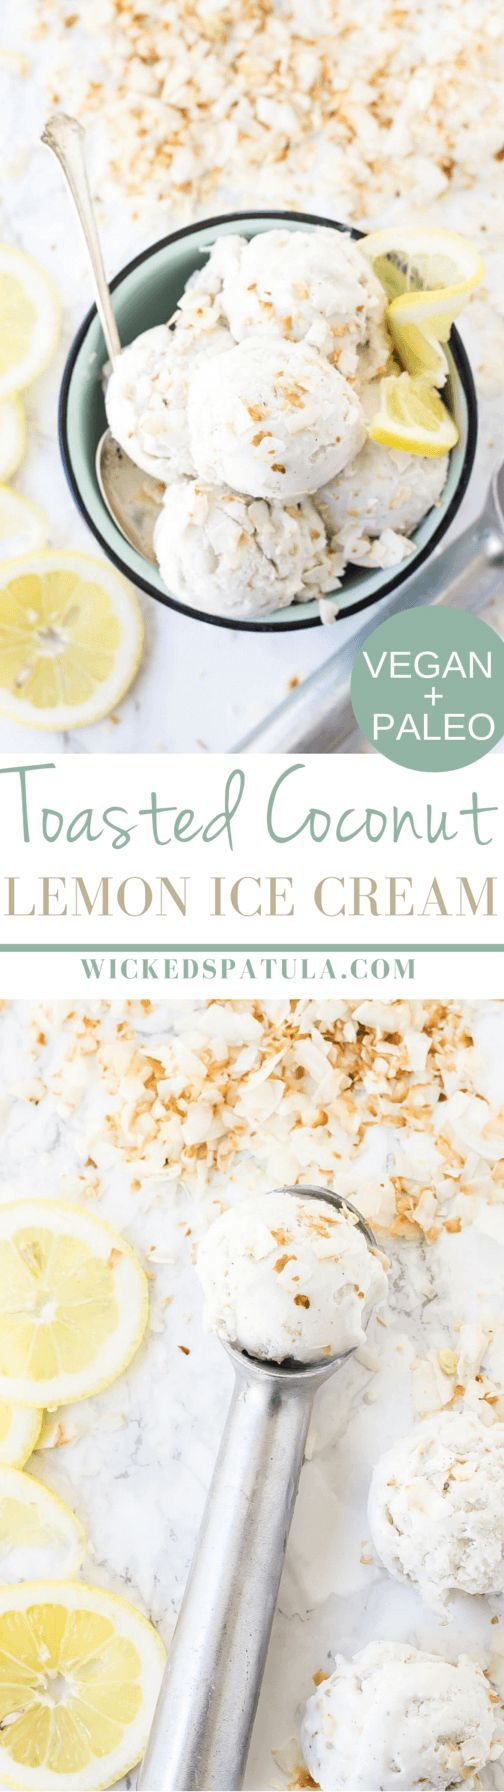 Toasted Coconut Lemon Ice Cream